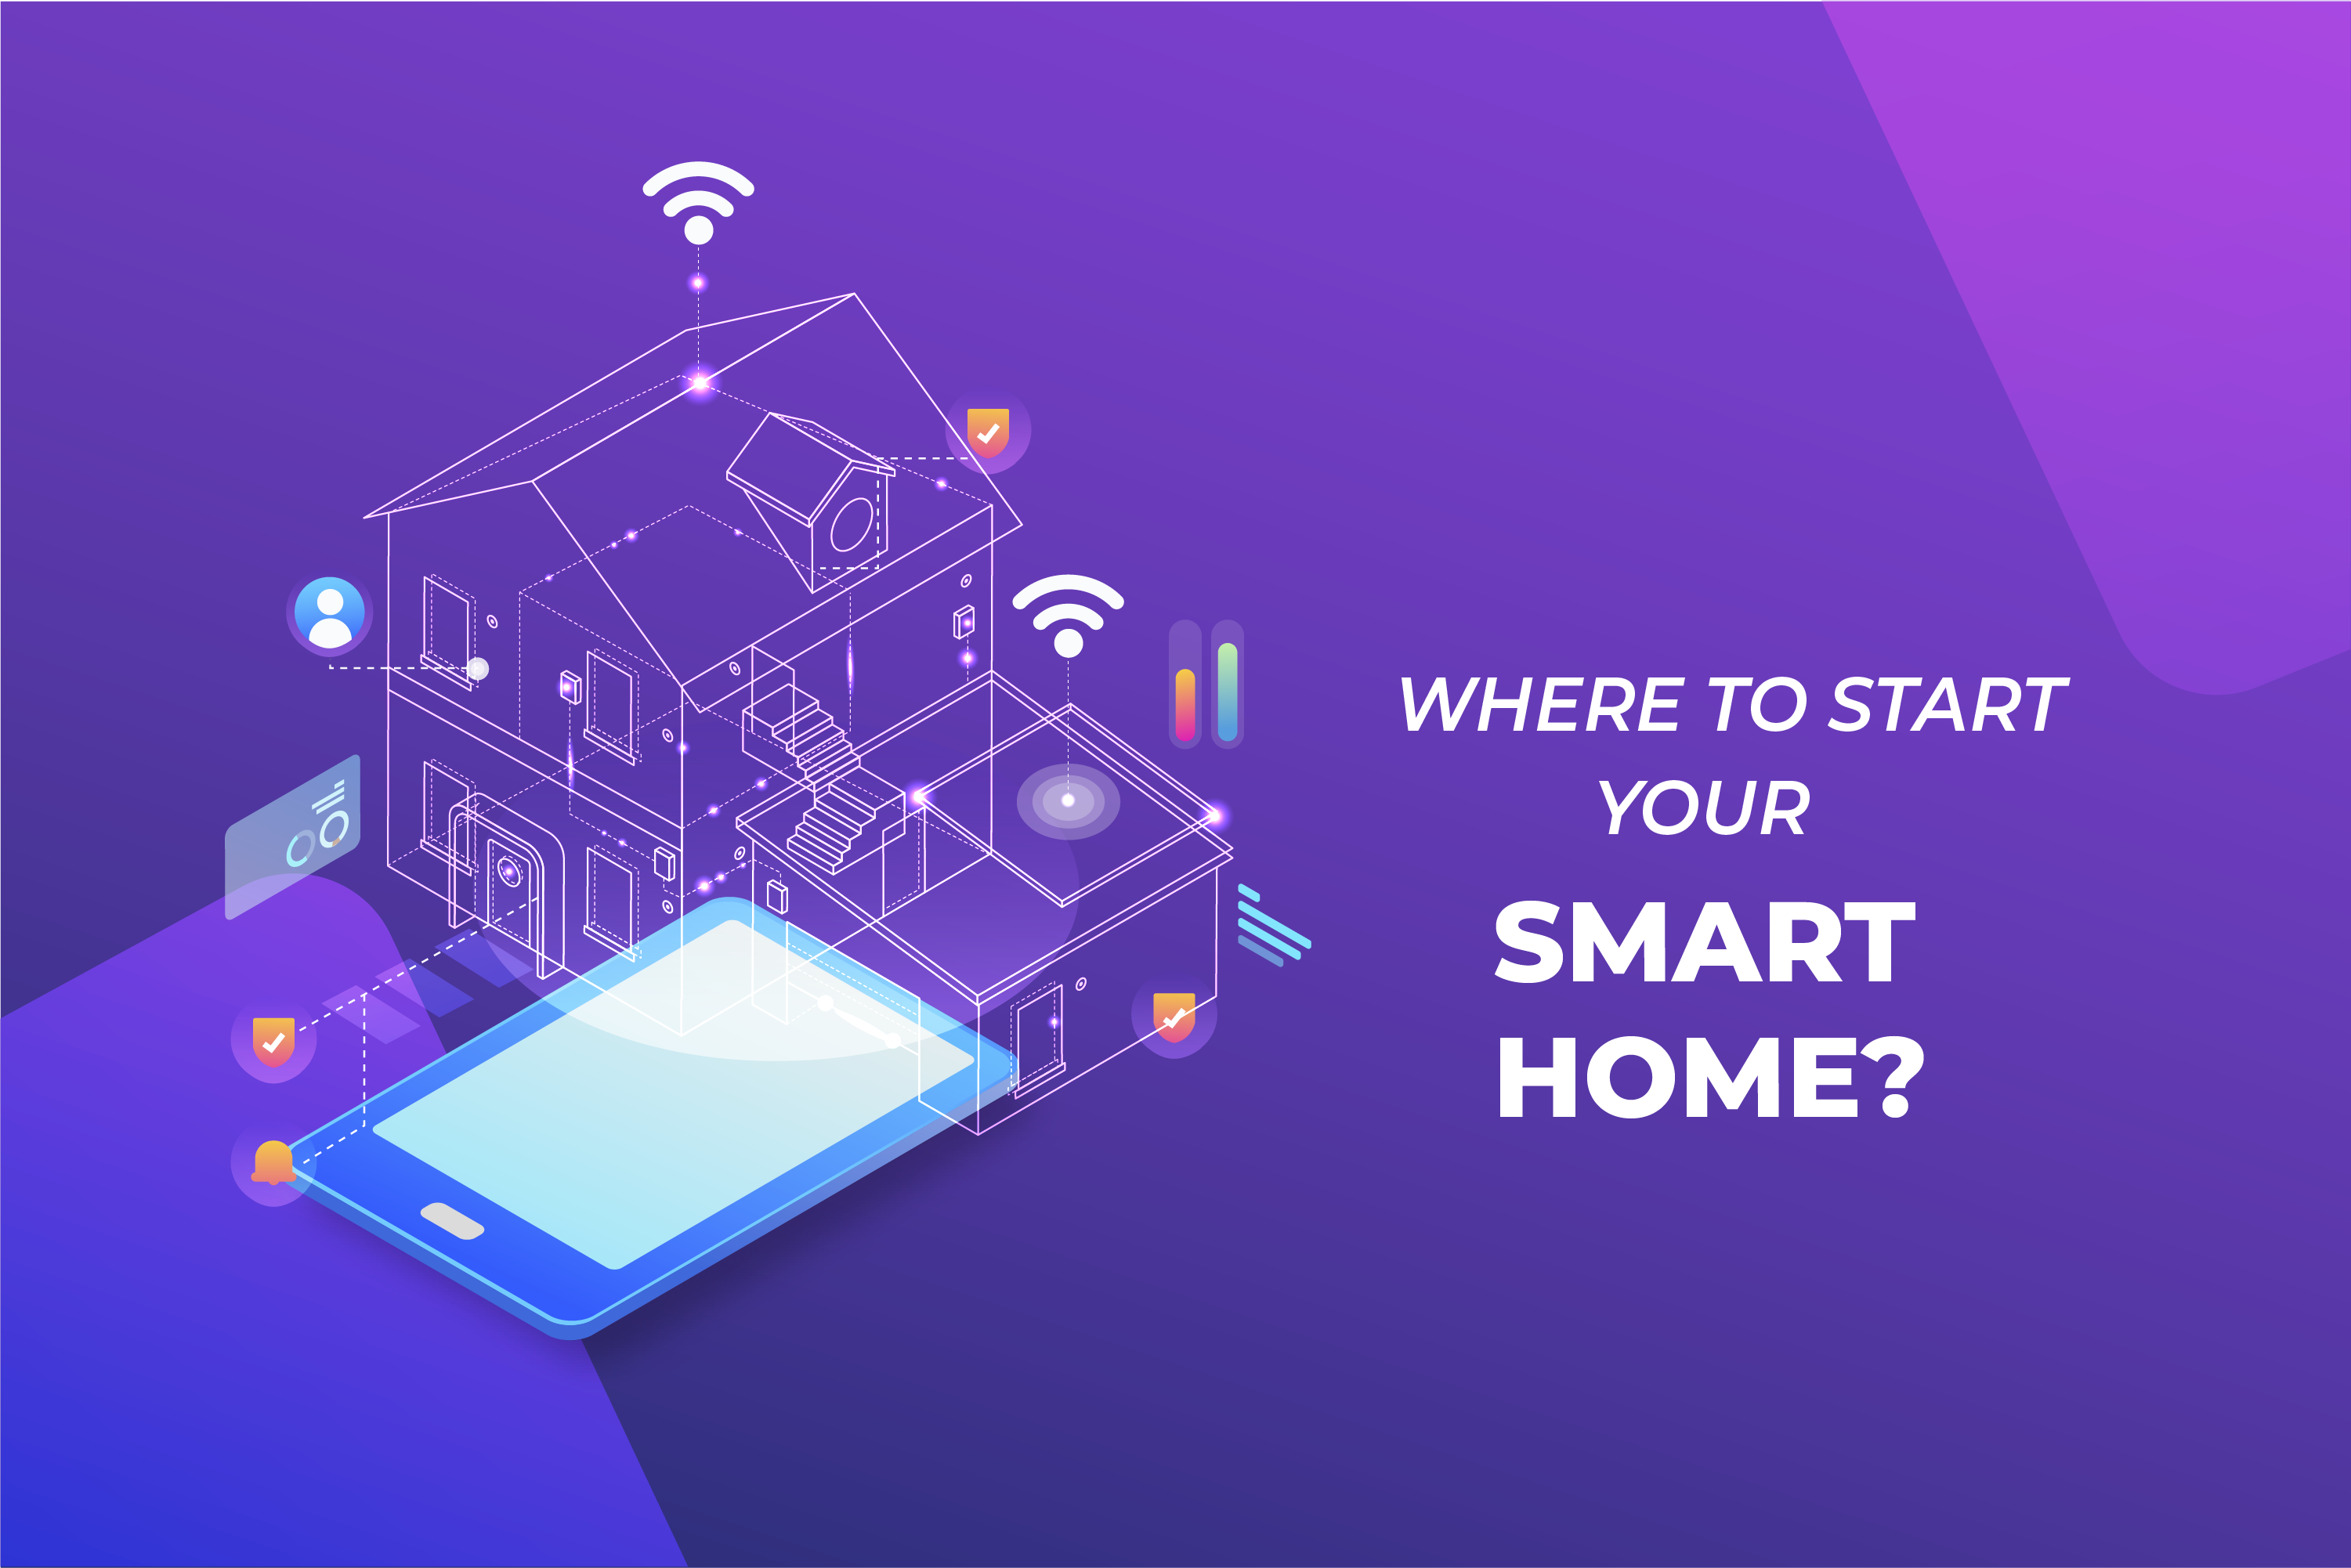 myl2 where to start smart home automation steps hubs zwave zigbee homekit apple samsung